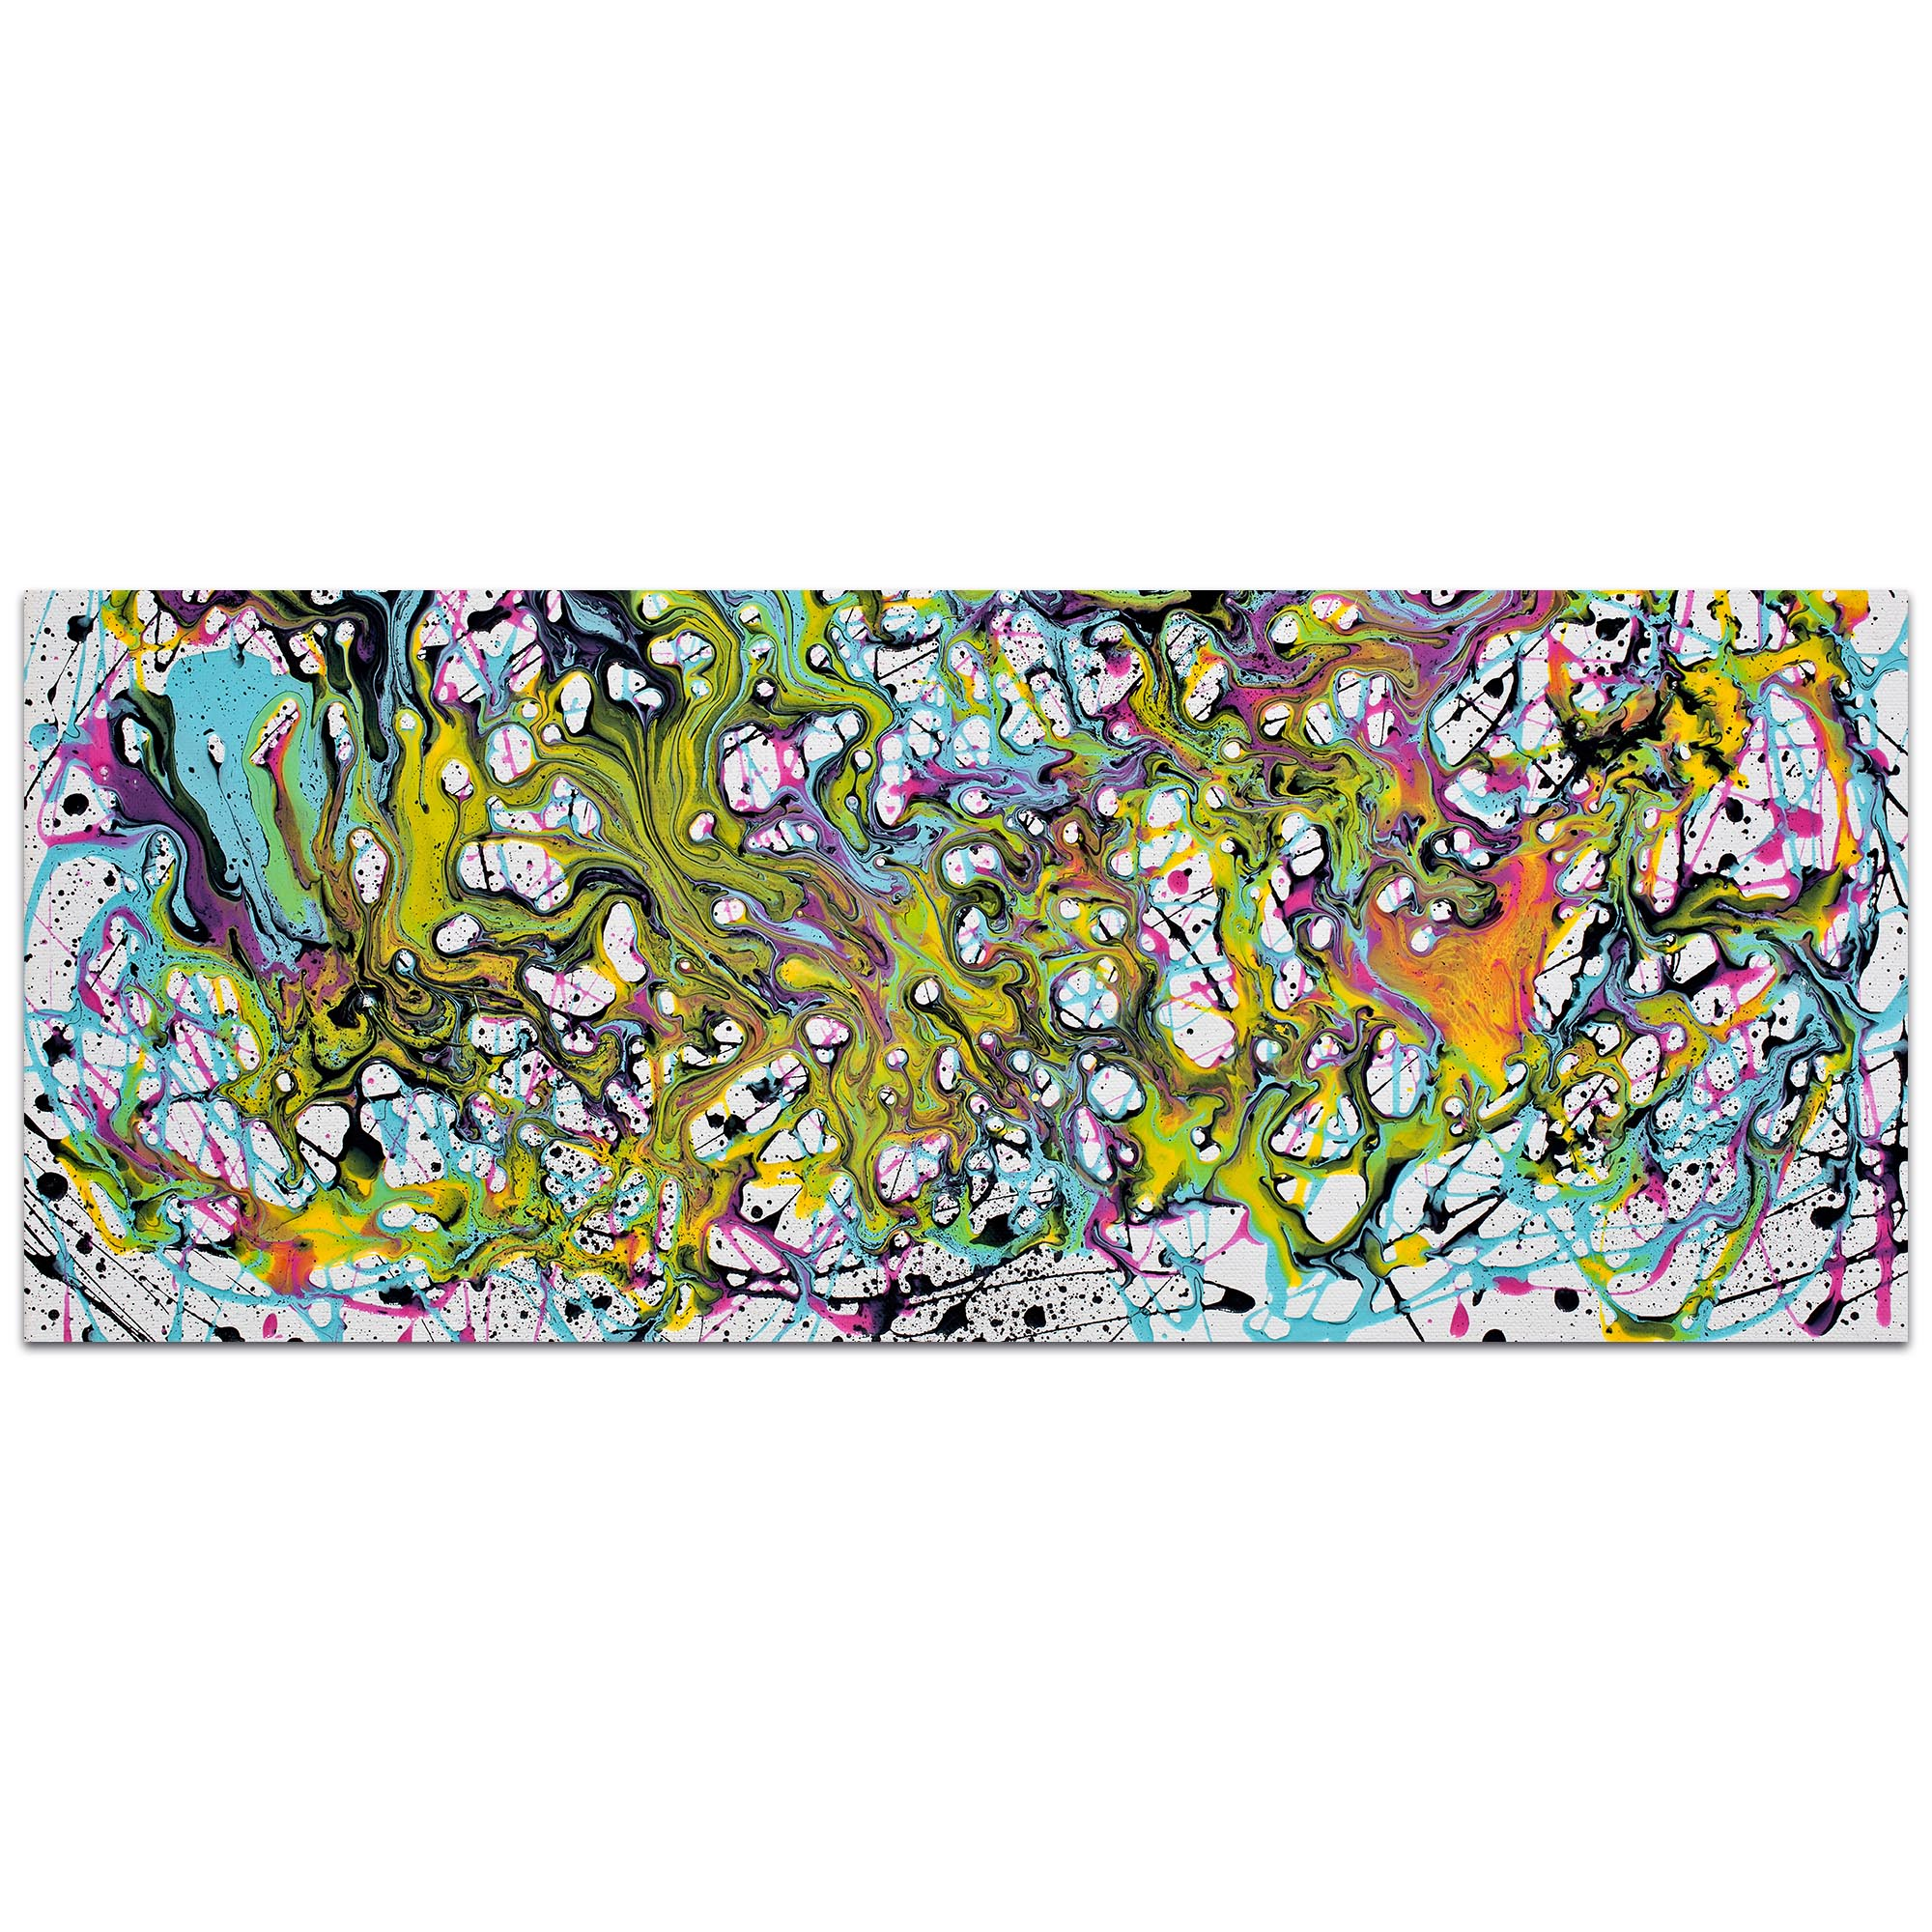 Abstract Wall Art 'Where Is My Mind' - Colorful Urban Decor on Metal or Plexiglass